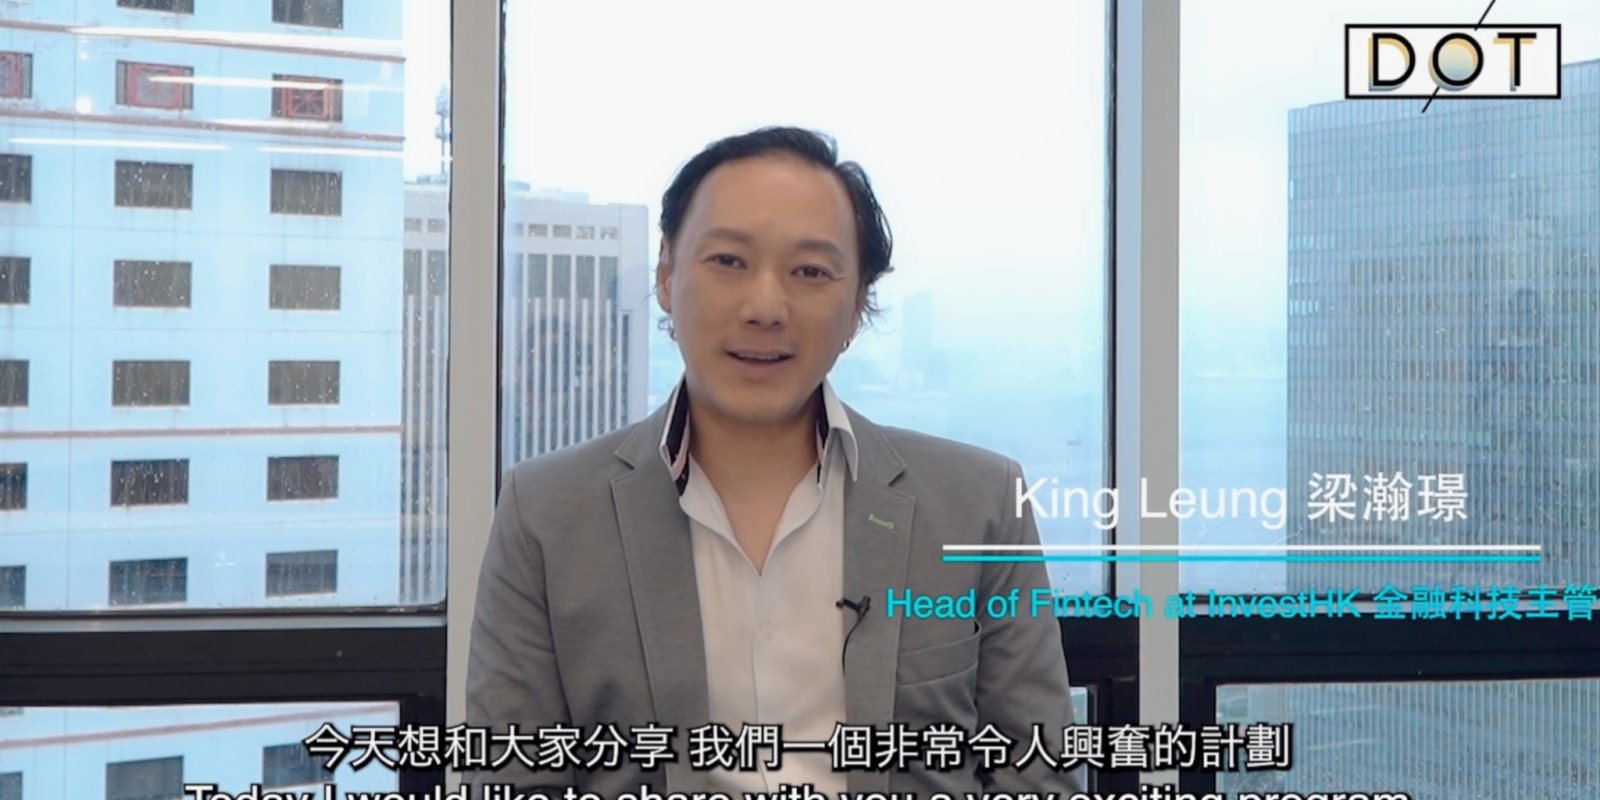 FintechHK | Global Fast Track: Meaningful connections, active fundraising opportunities & accelerated expansions